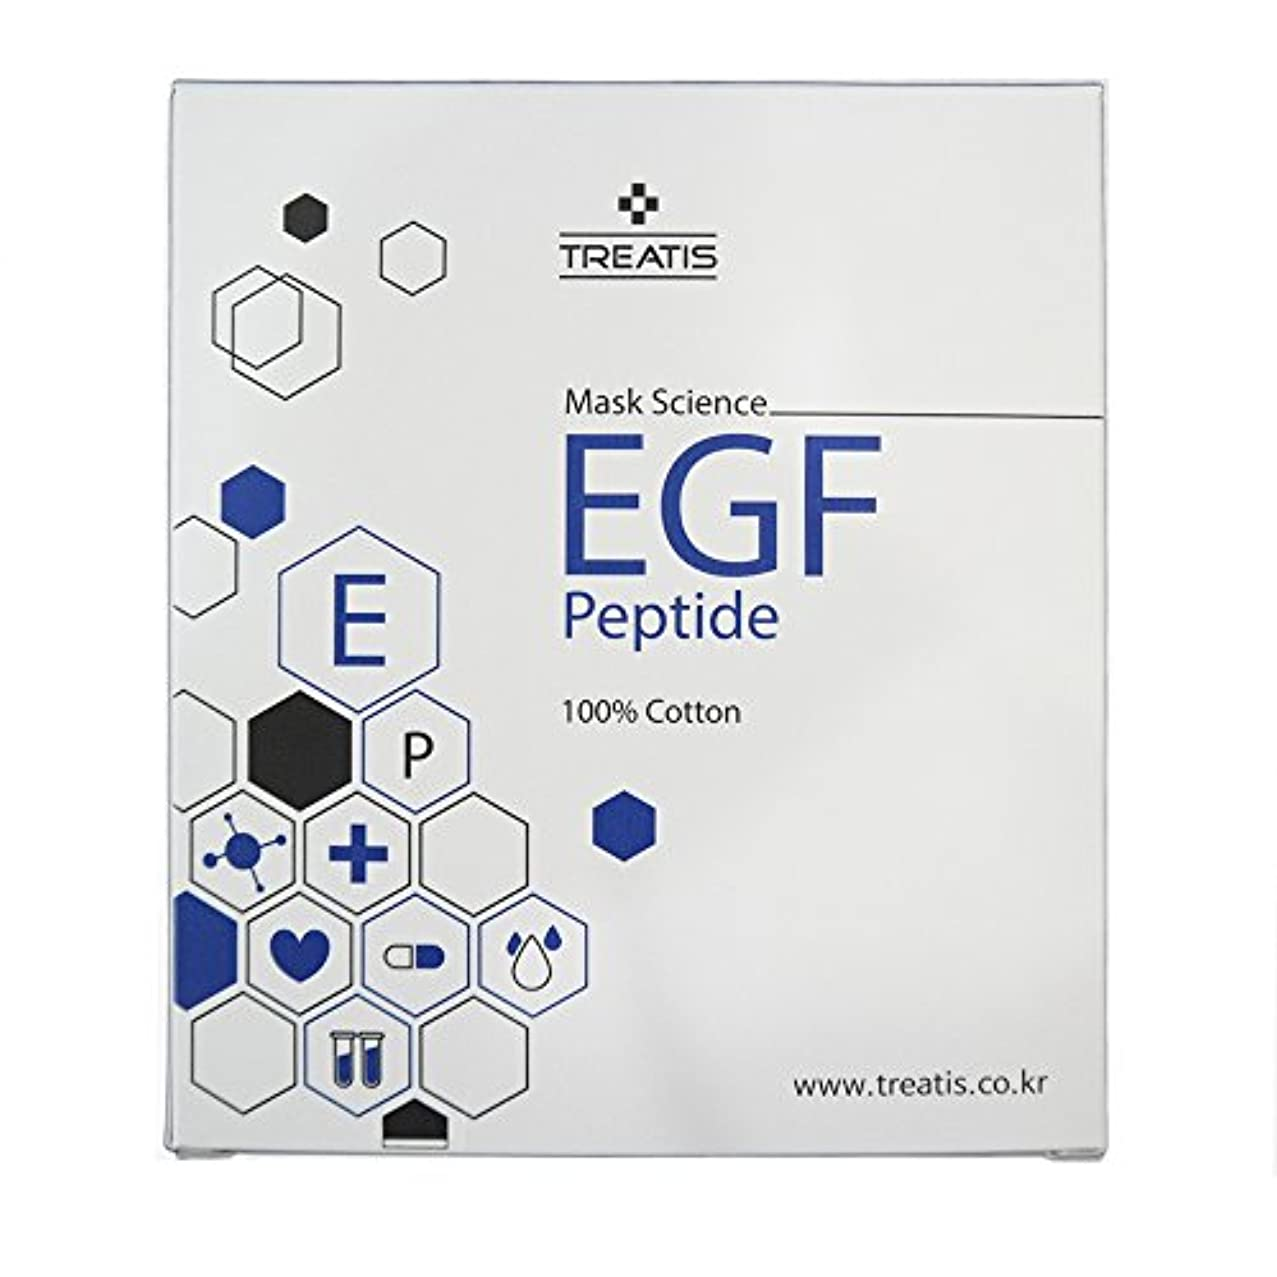 ♥贈呈品あり♥TREATIS EGF PEPTIDE MASK PACK (10 Sheet) [並行輸入品]